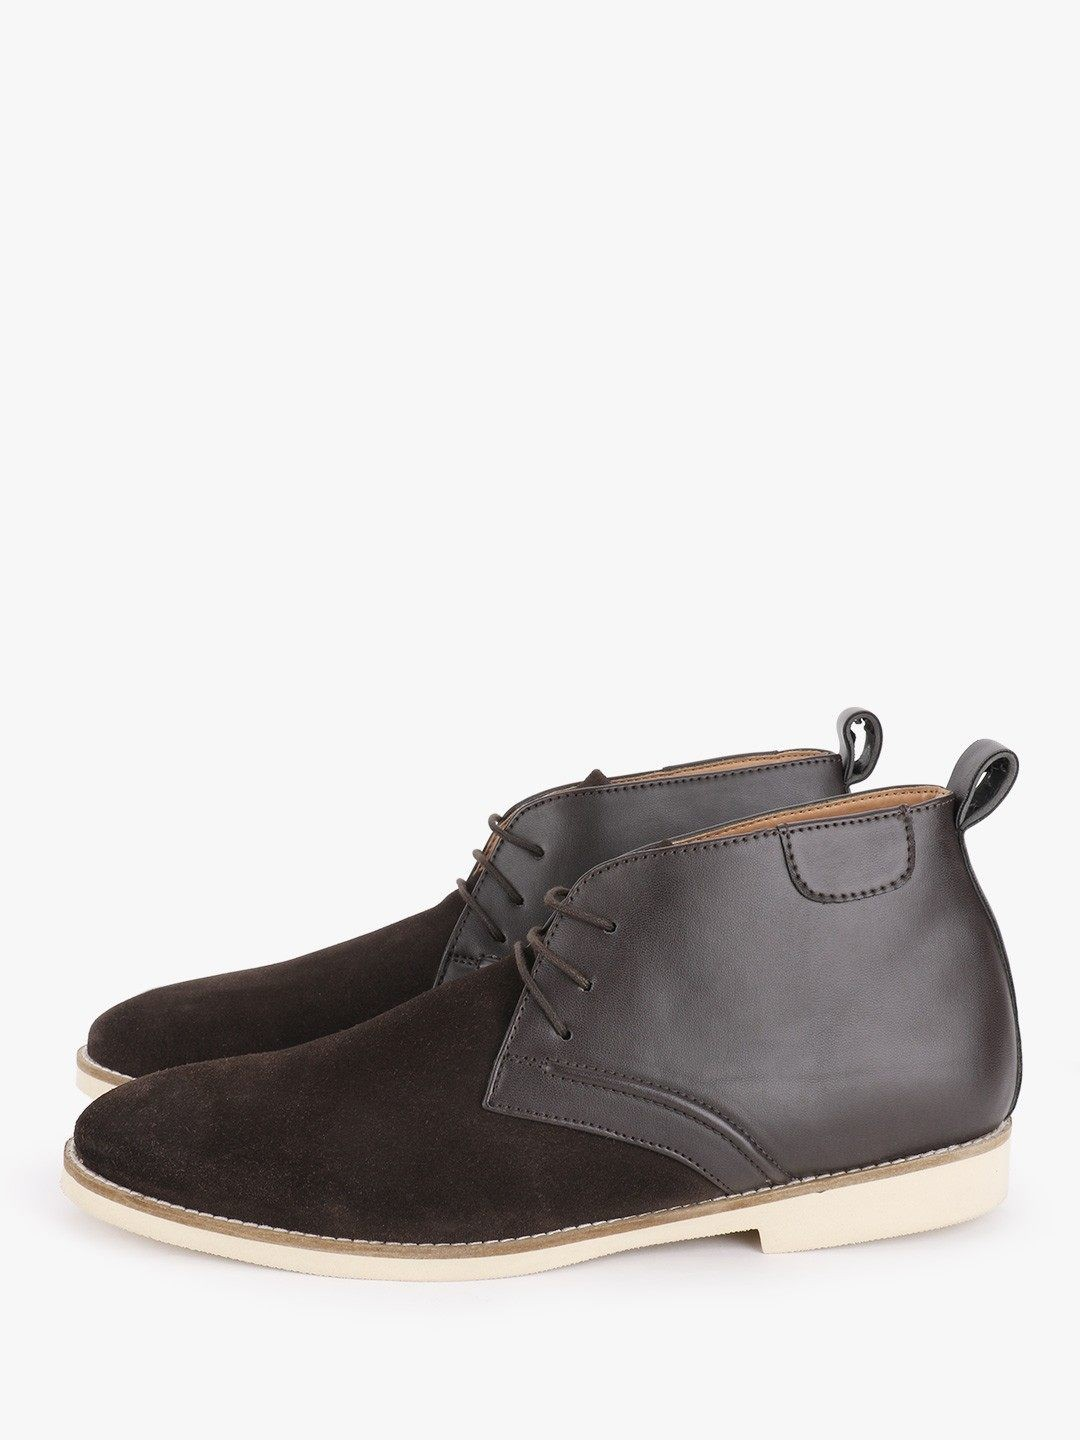 Griffin Brown Panel Detail Suede Leather Boots 1